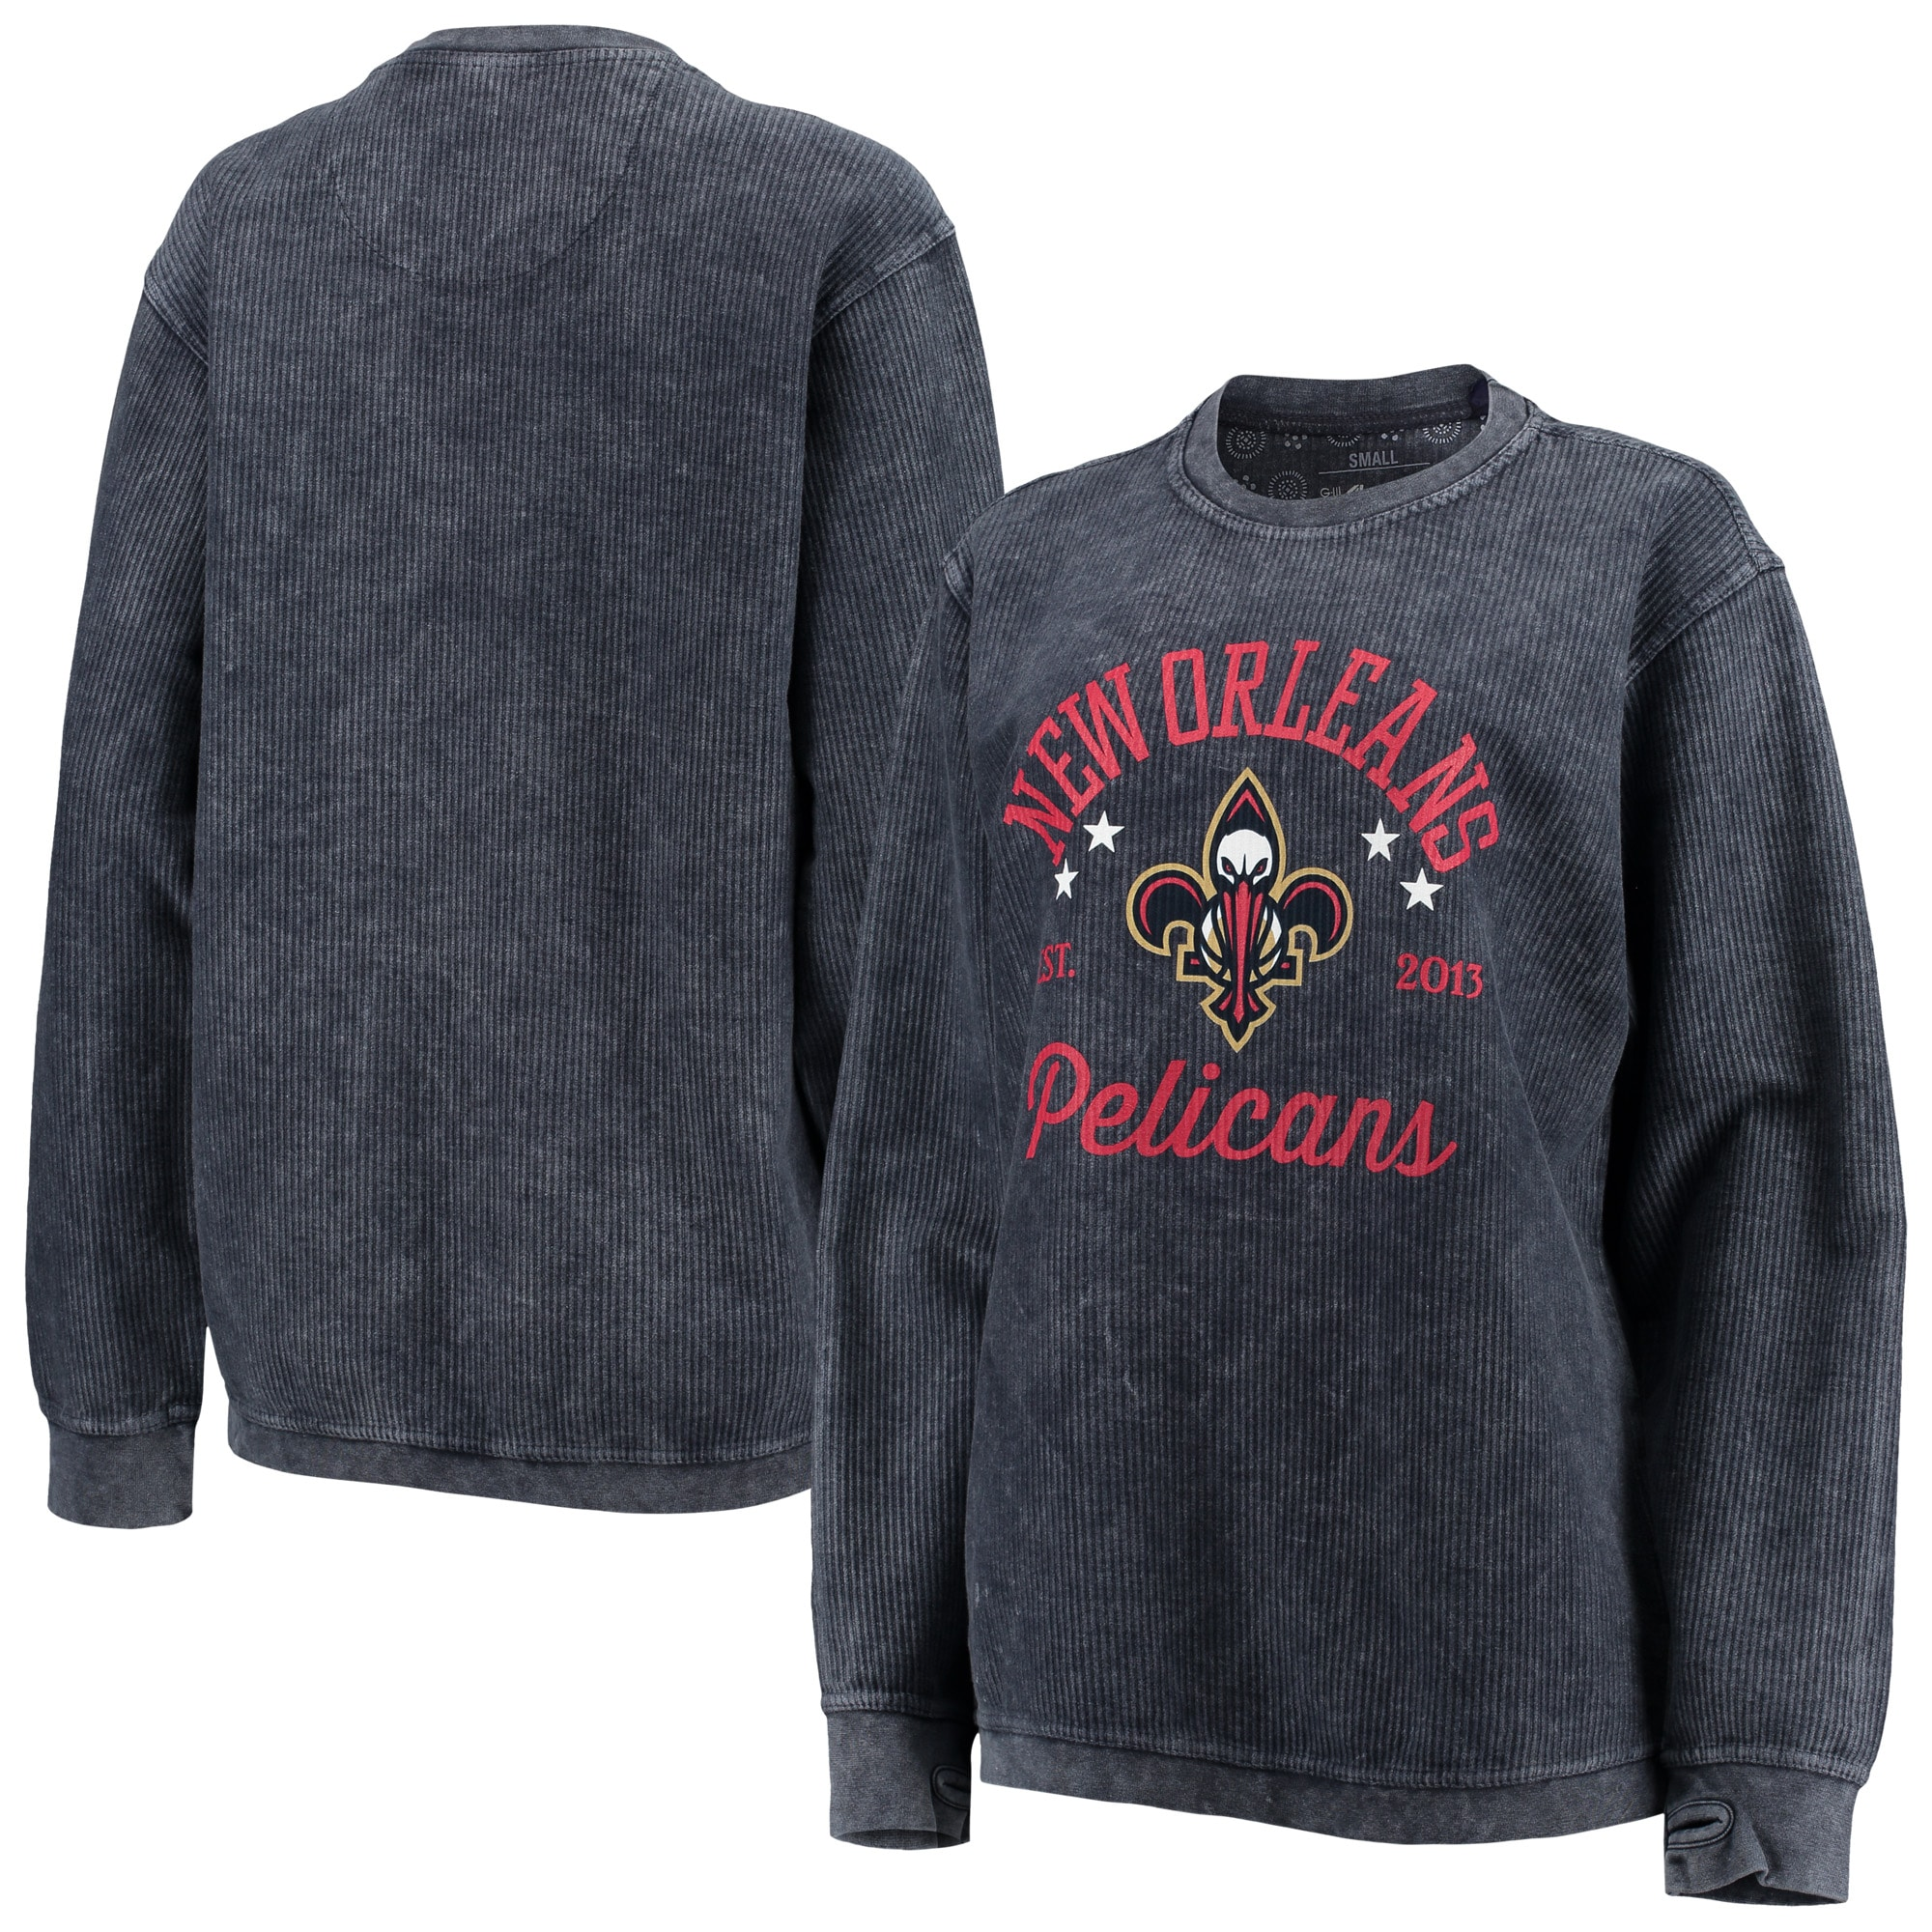 New Orleans Pelicans G-III Sports by Carl Banks Women's Slouchy Comfy Cord Crewneck Pullover Sweatshirt - Navy